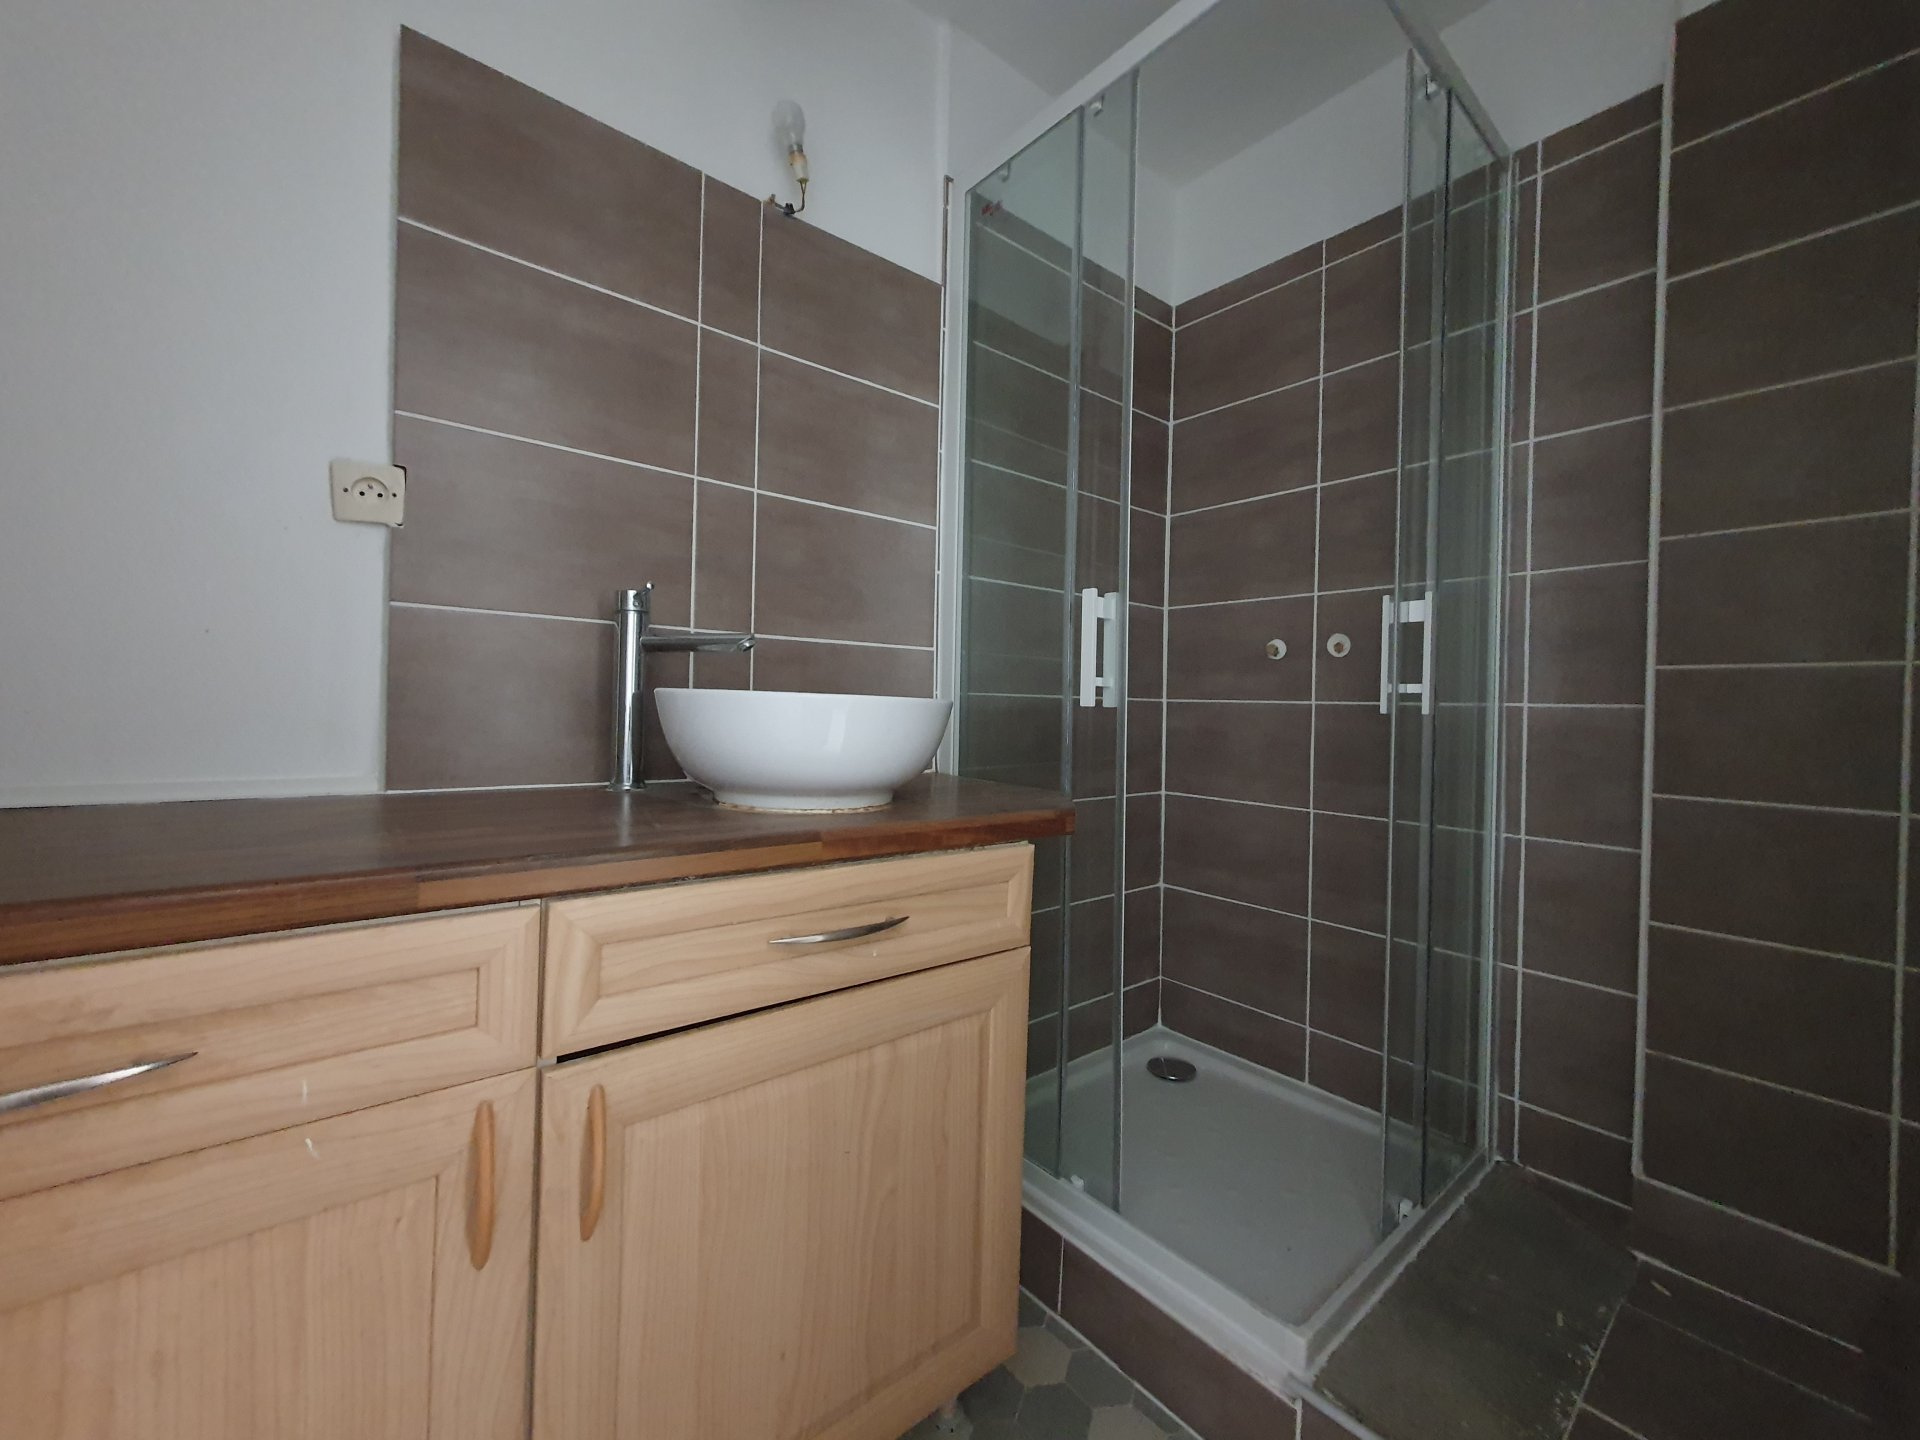 APPARTEMENT T3 RENOVE - LUMINEUX